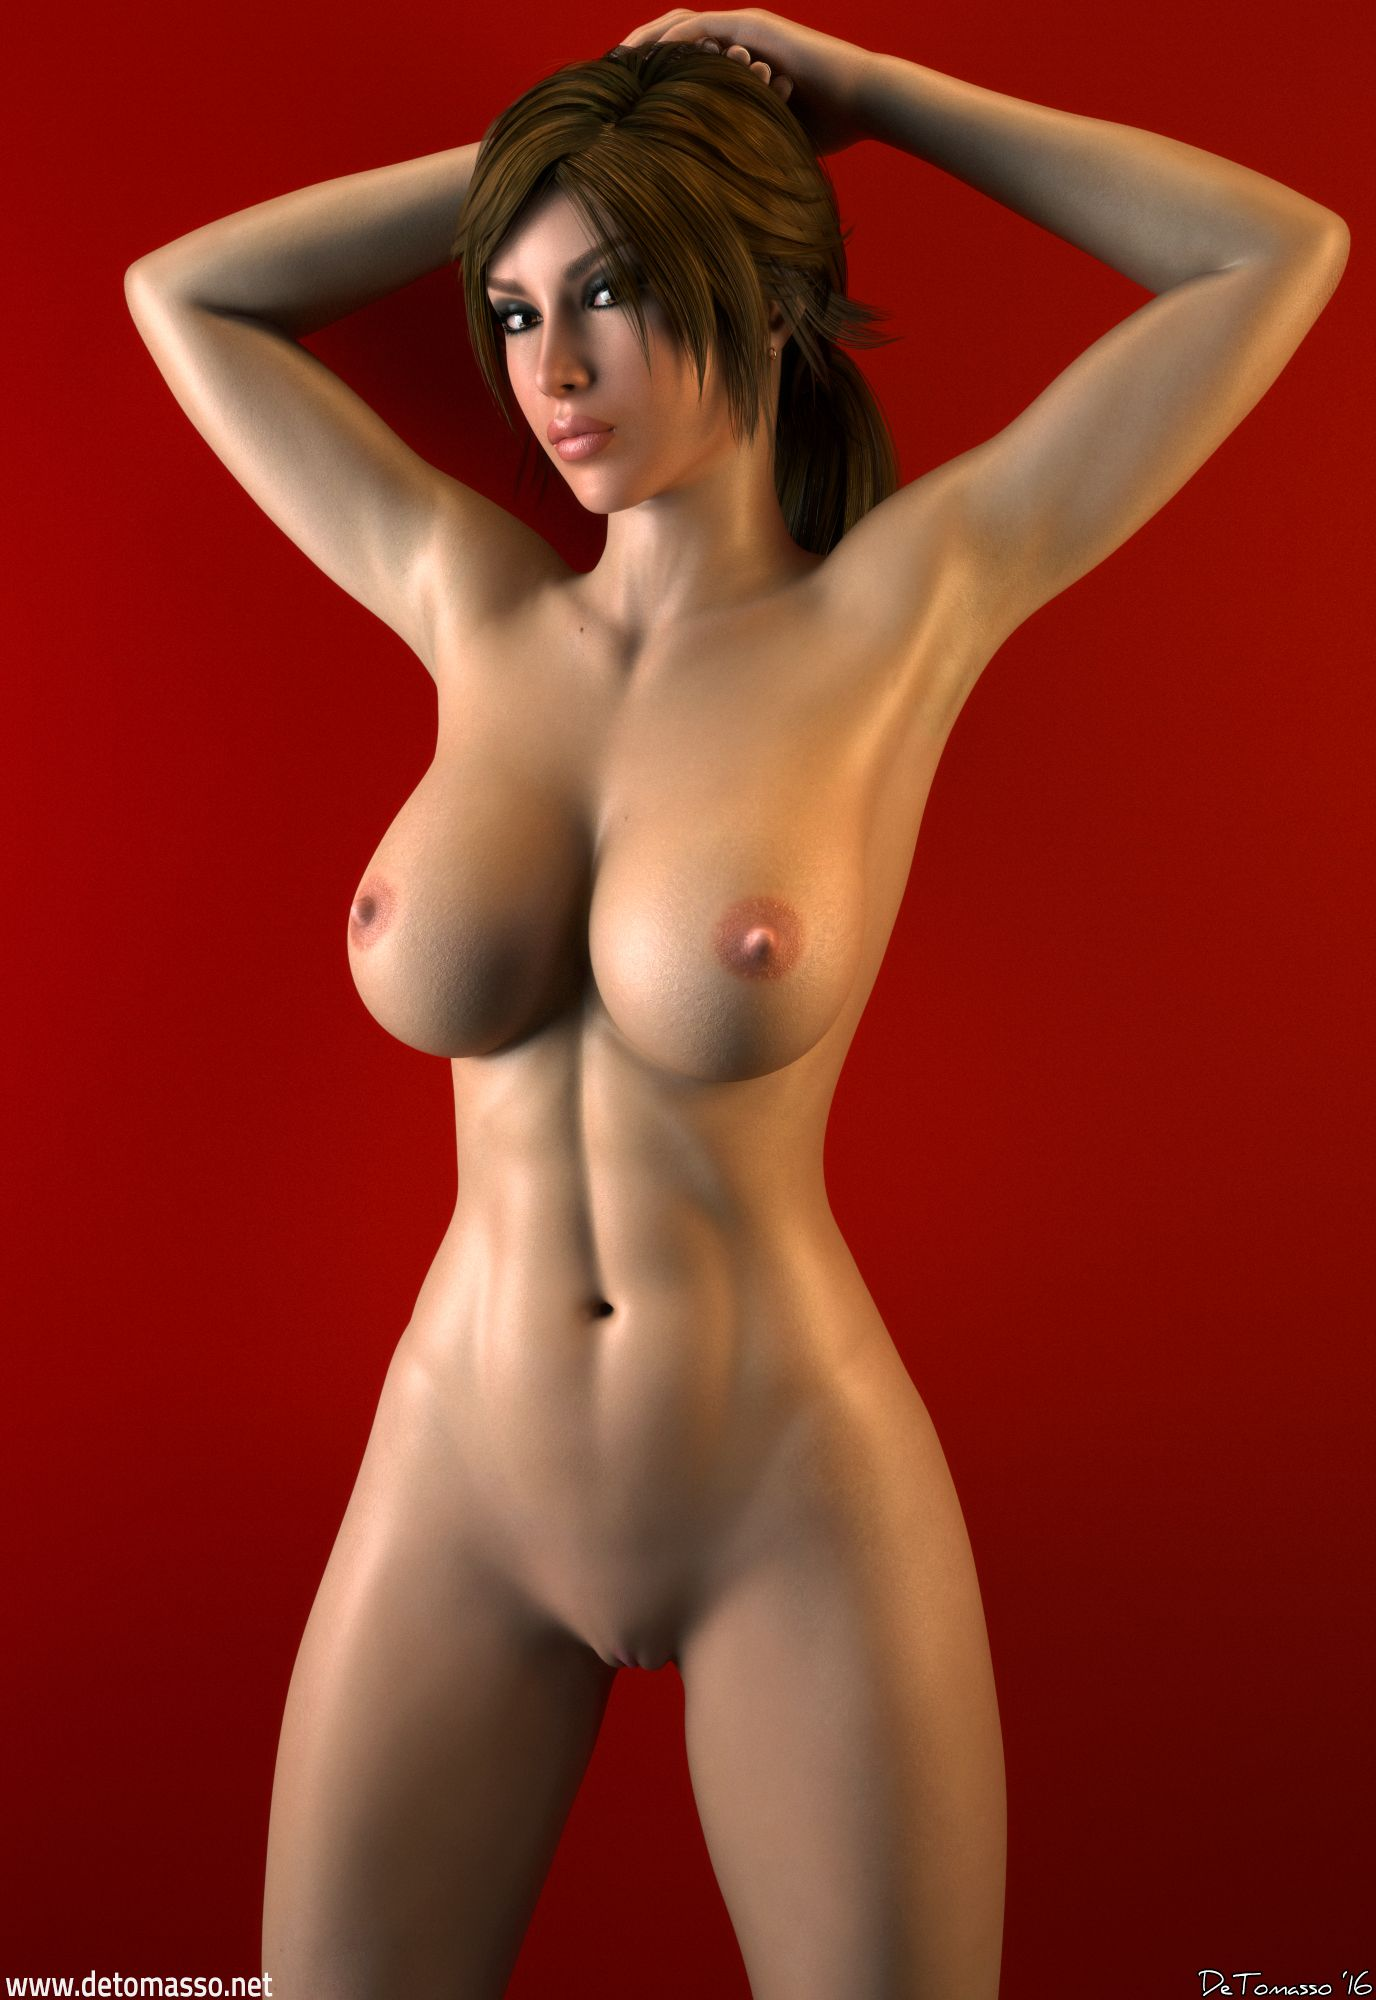 Laura croft red nude — pic 5